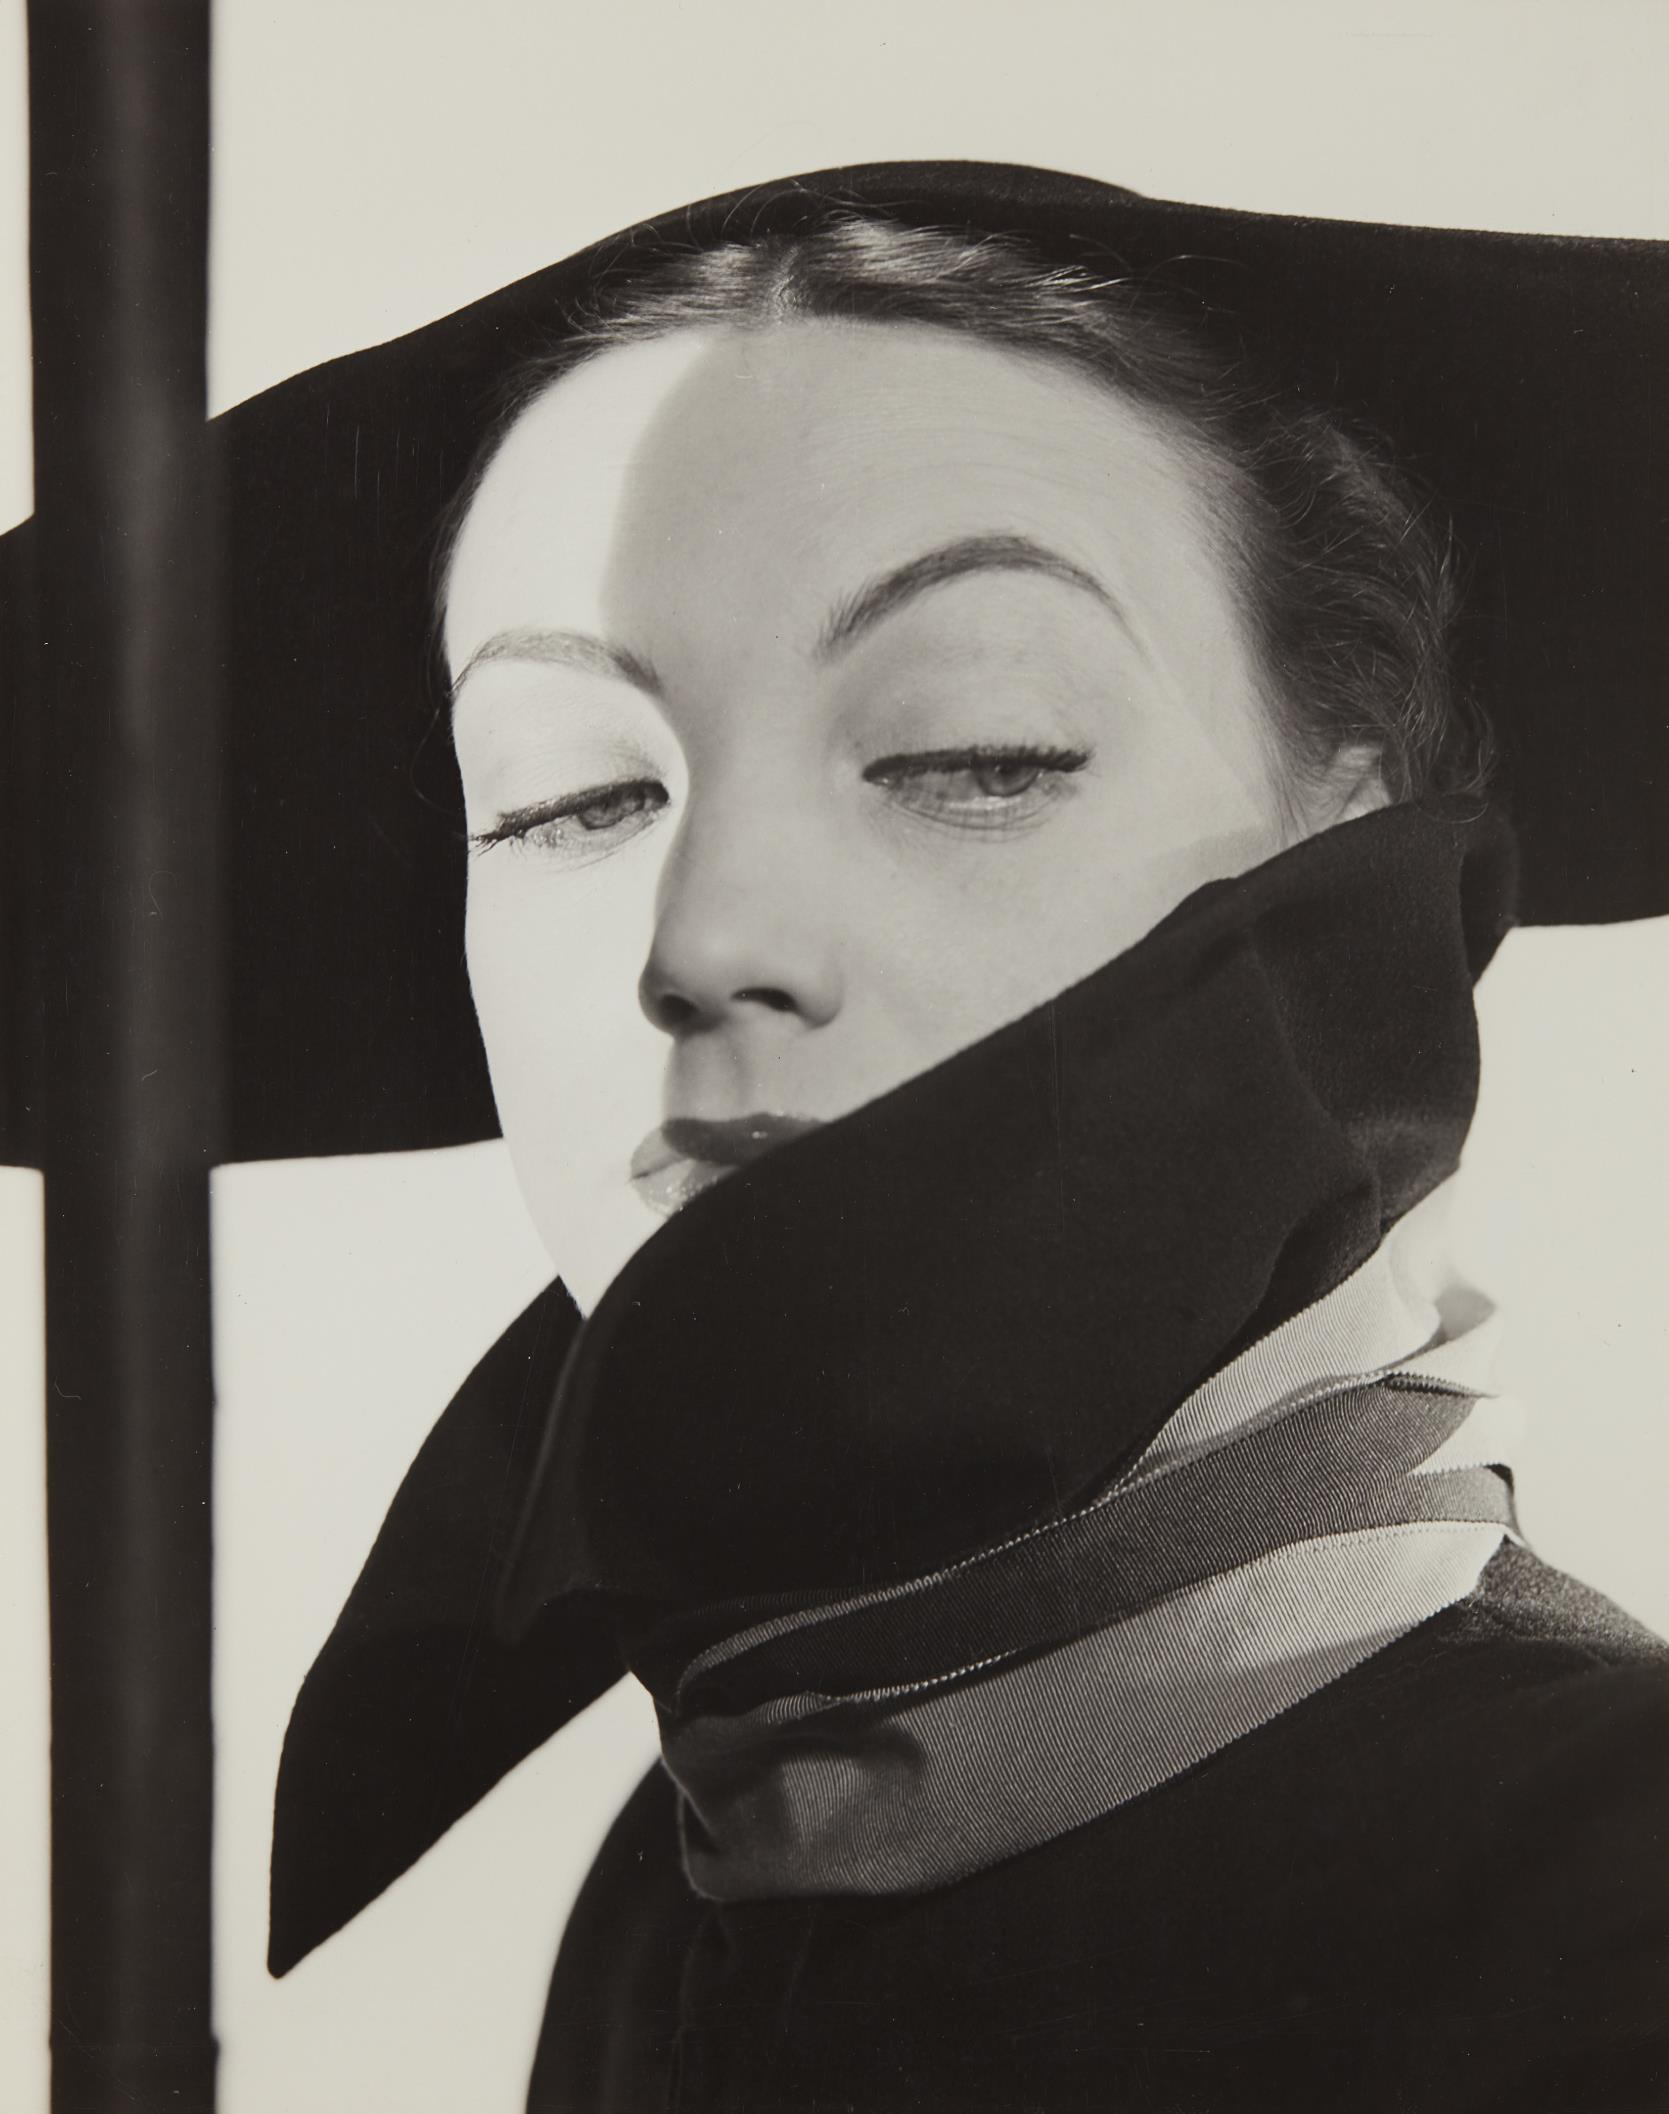 Erwin Blumenfeld-Hat Fashion, Dior, New York-1946